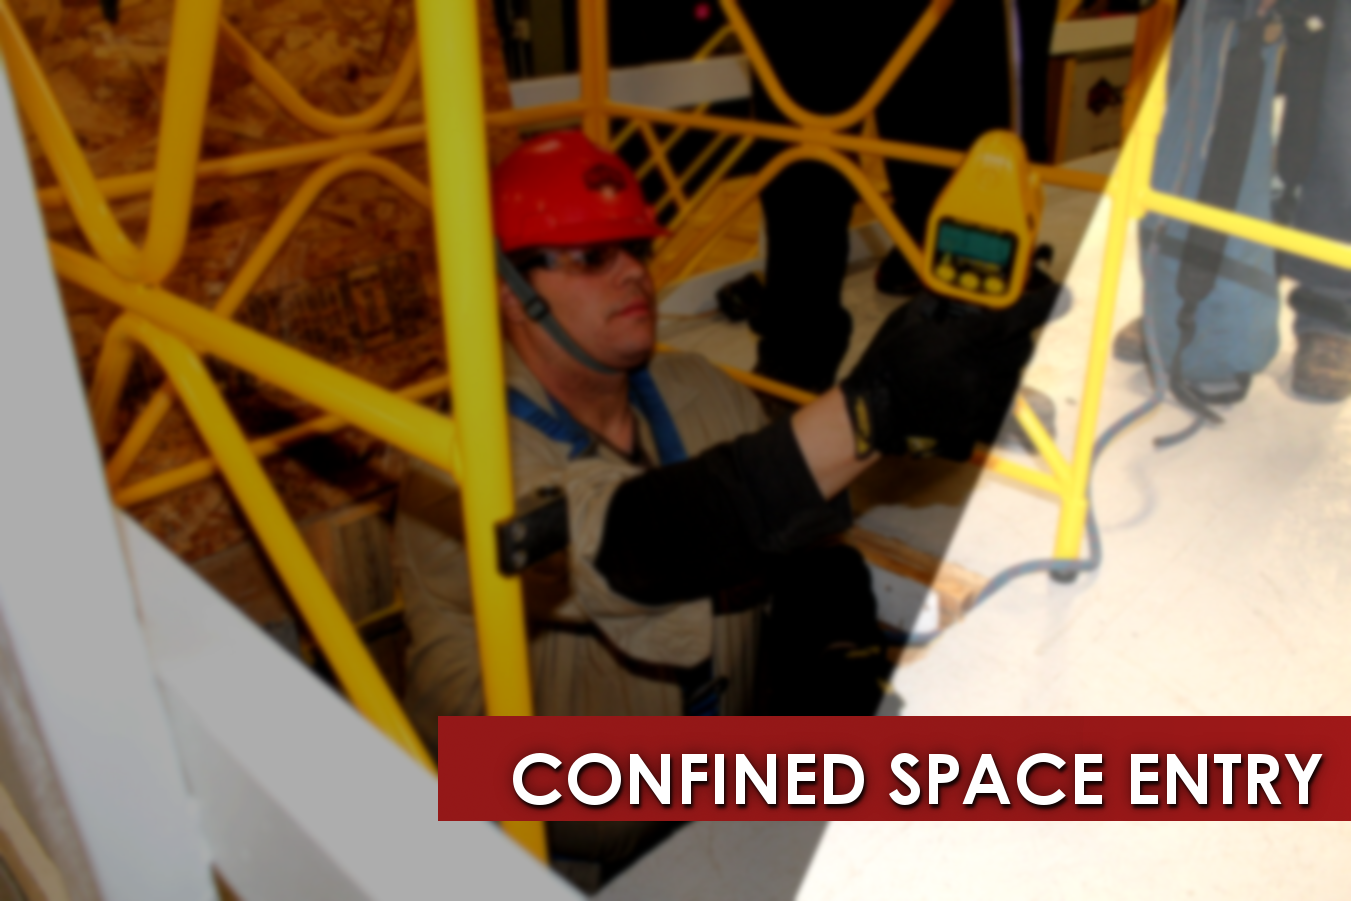 Confined_Space_Entry_web_page.png